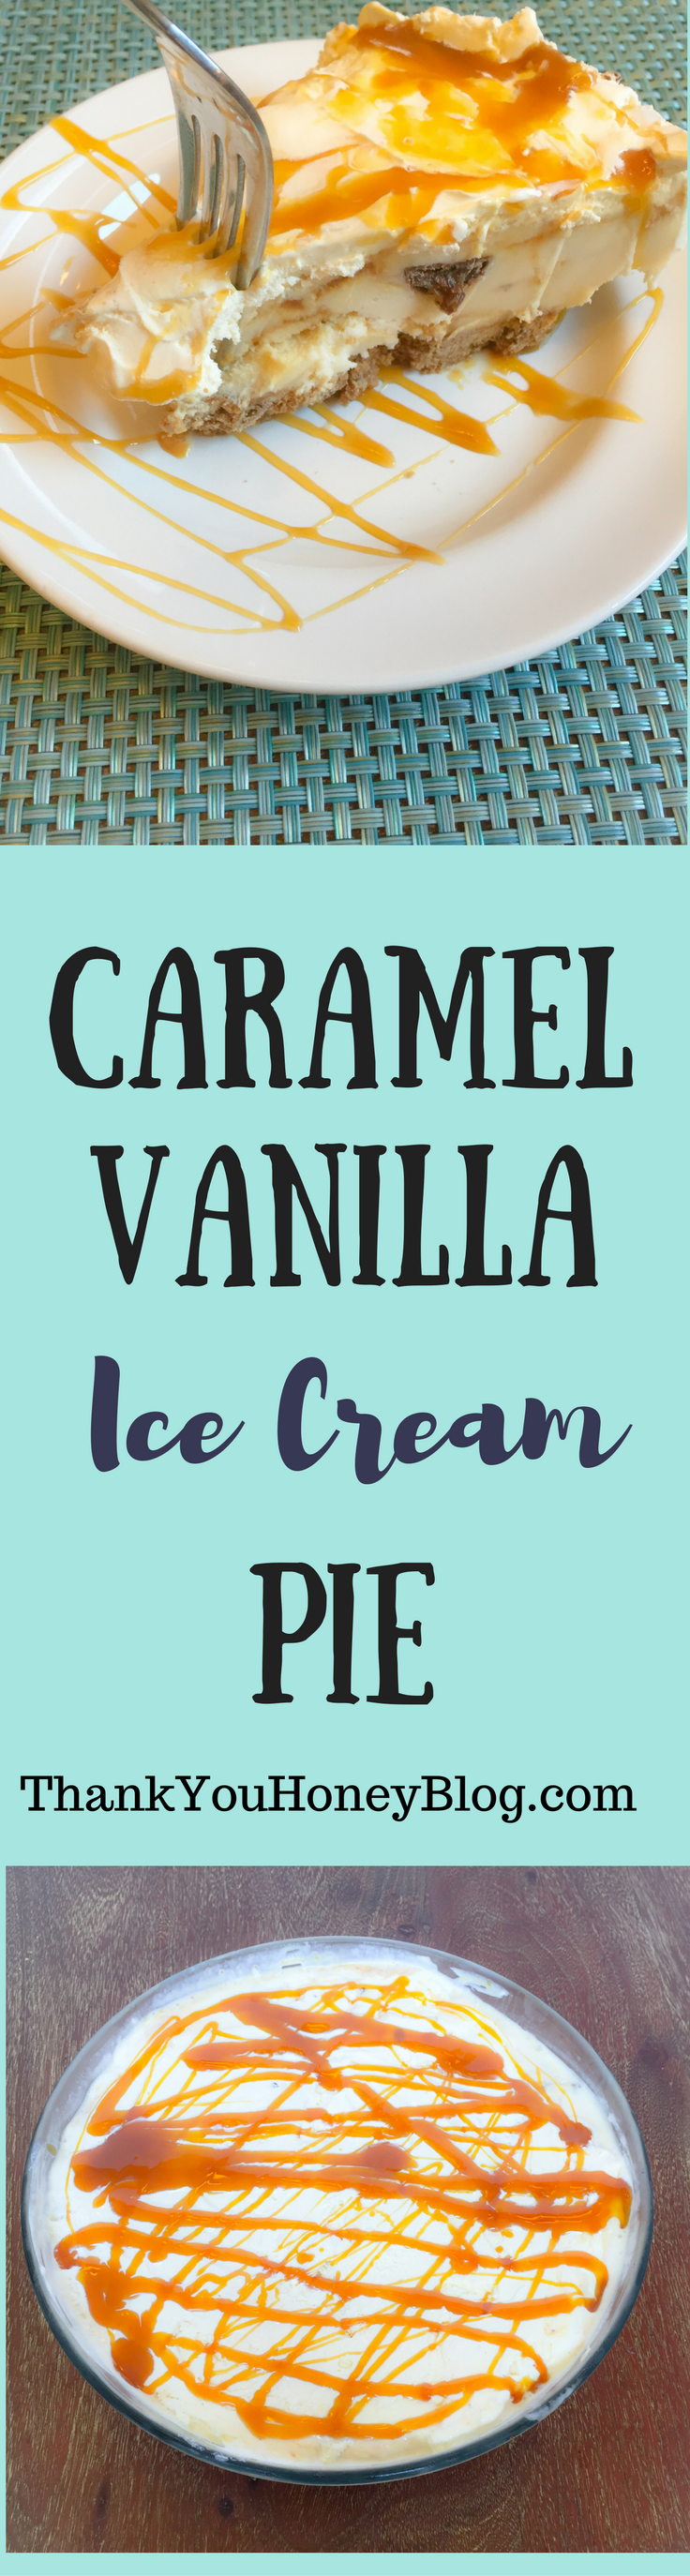 Caramel Vanilla Ice Cream Pie #MayfieldFamily {ad}